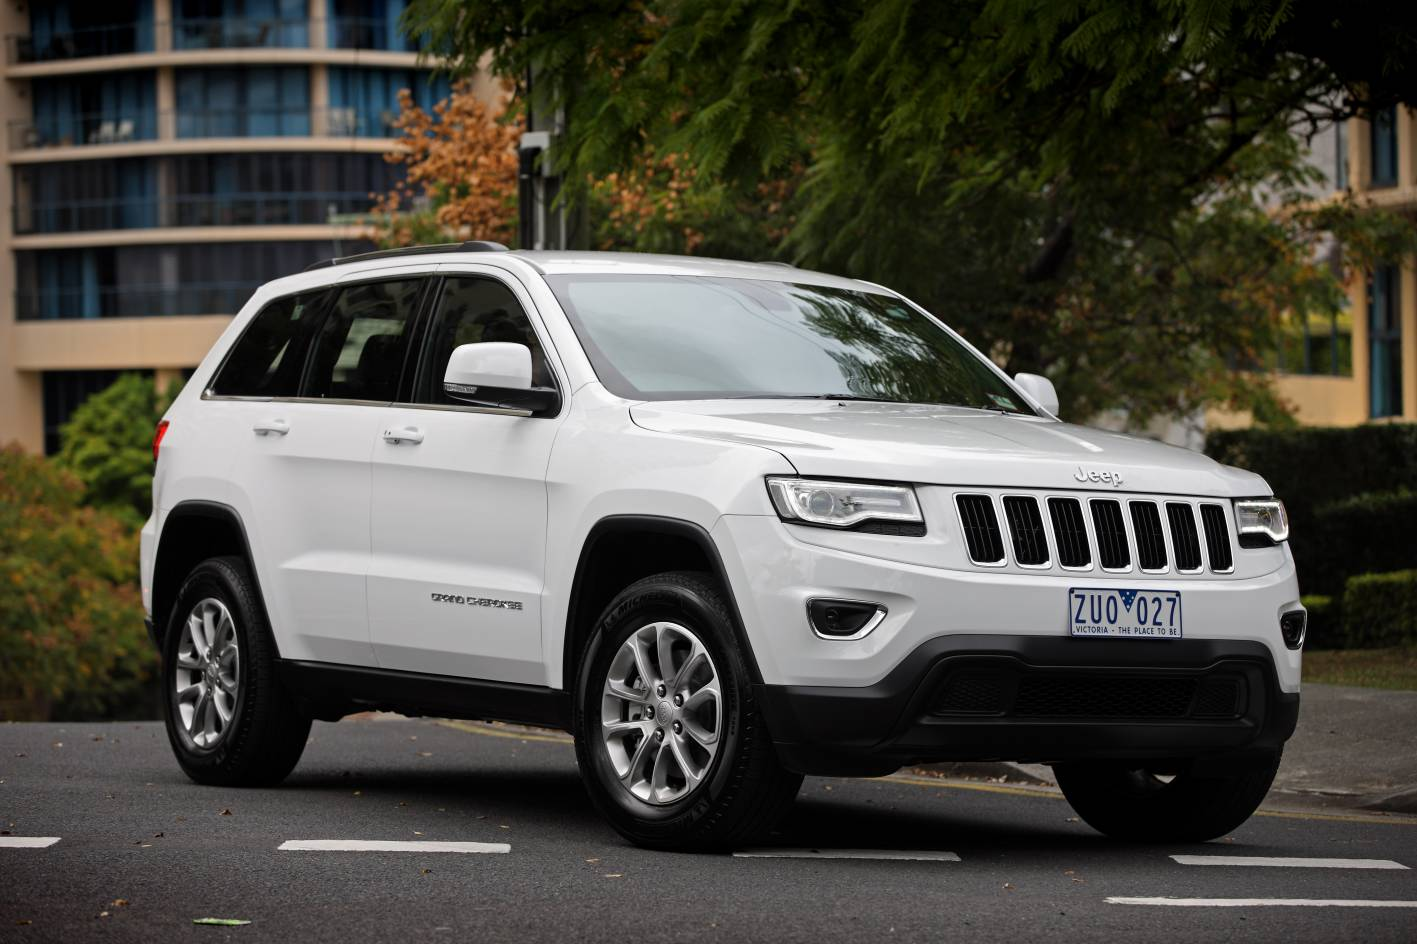 pics photos 2013 jeep grand cherokee for sale. Cars Review. Best American Auto & Cars Review